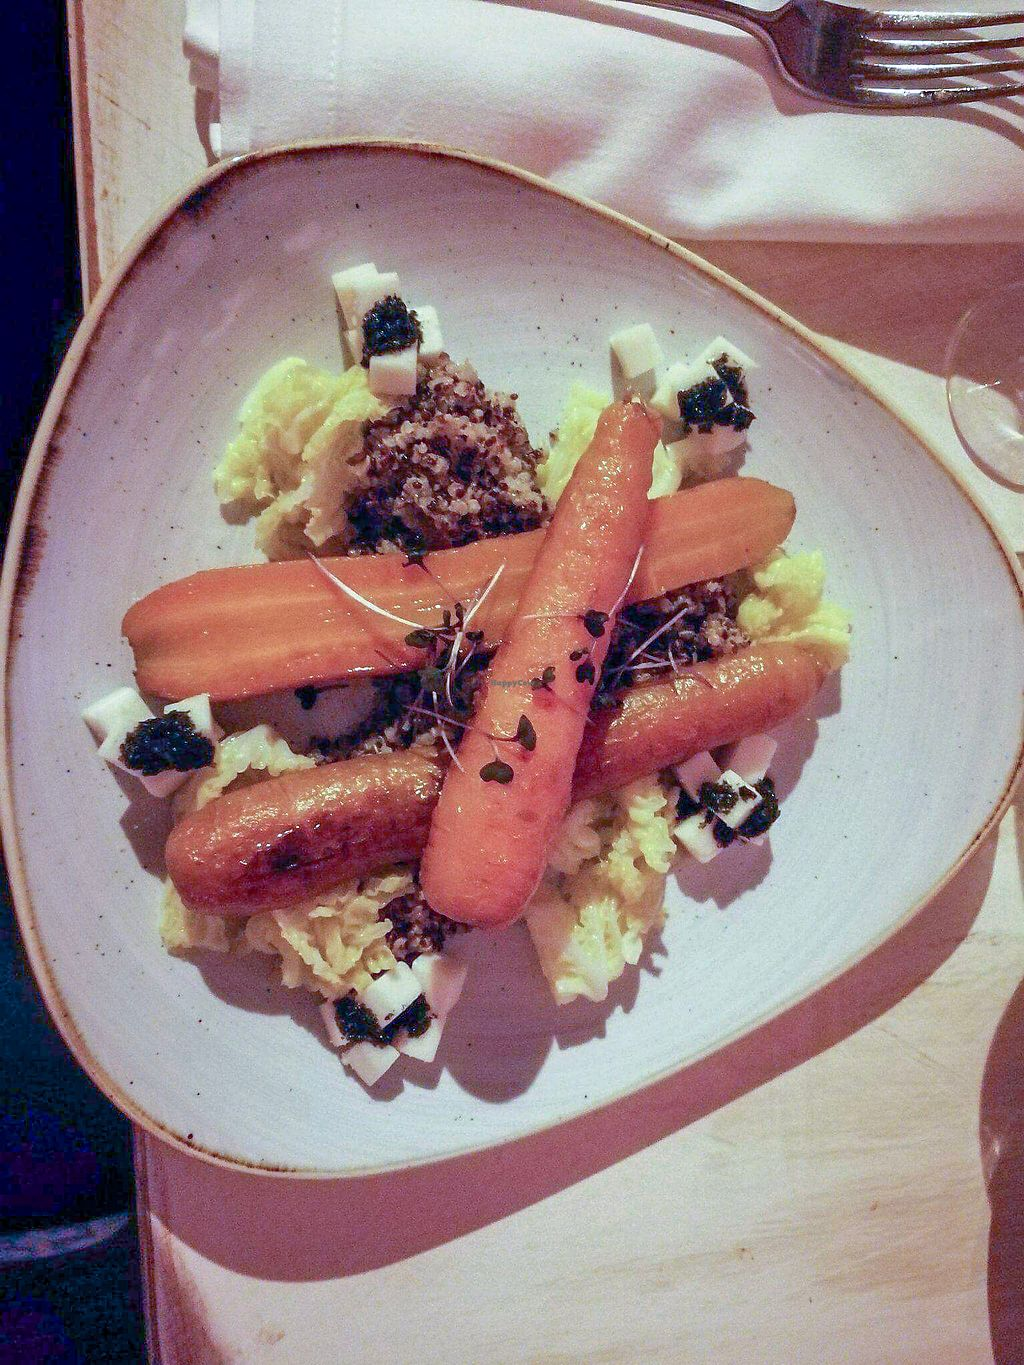 """Photo of Glow  by <a href=""""/members/profile/TatyanaMatveyeva"""">TatyanaMatveyeva</a> <br/>Caramelized carrots with quinoa and goat cheese   <br/> December 31, 2017  - <a href='/contact/abuse/image/107923/341446'>Report</a>"""